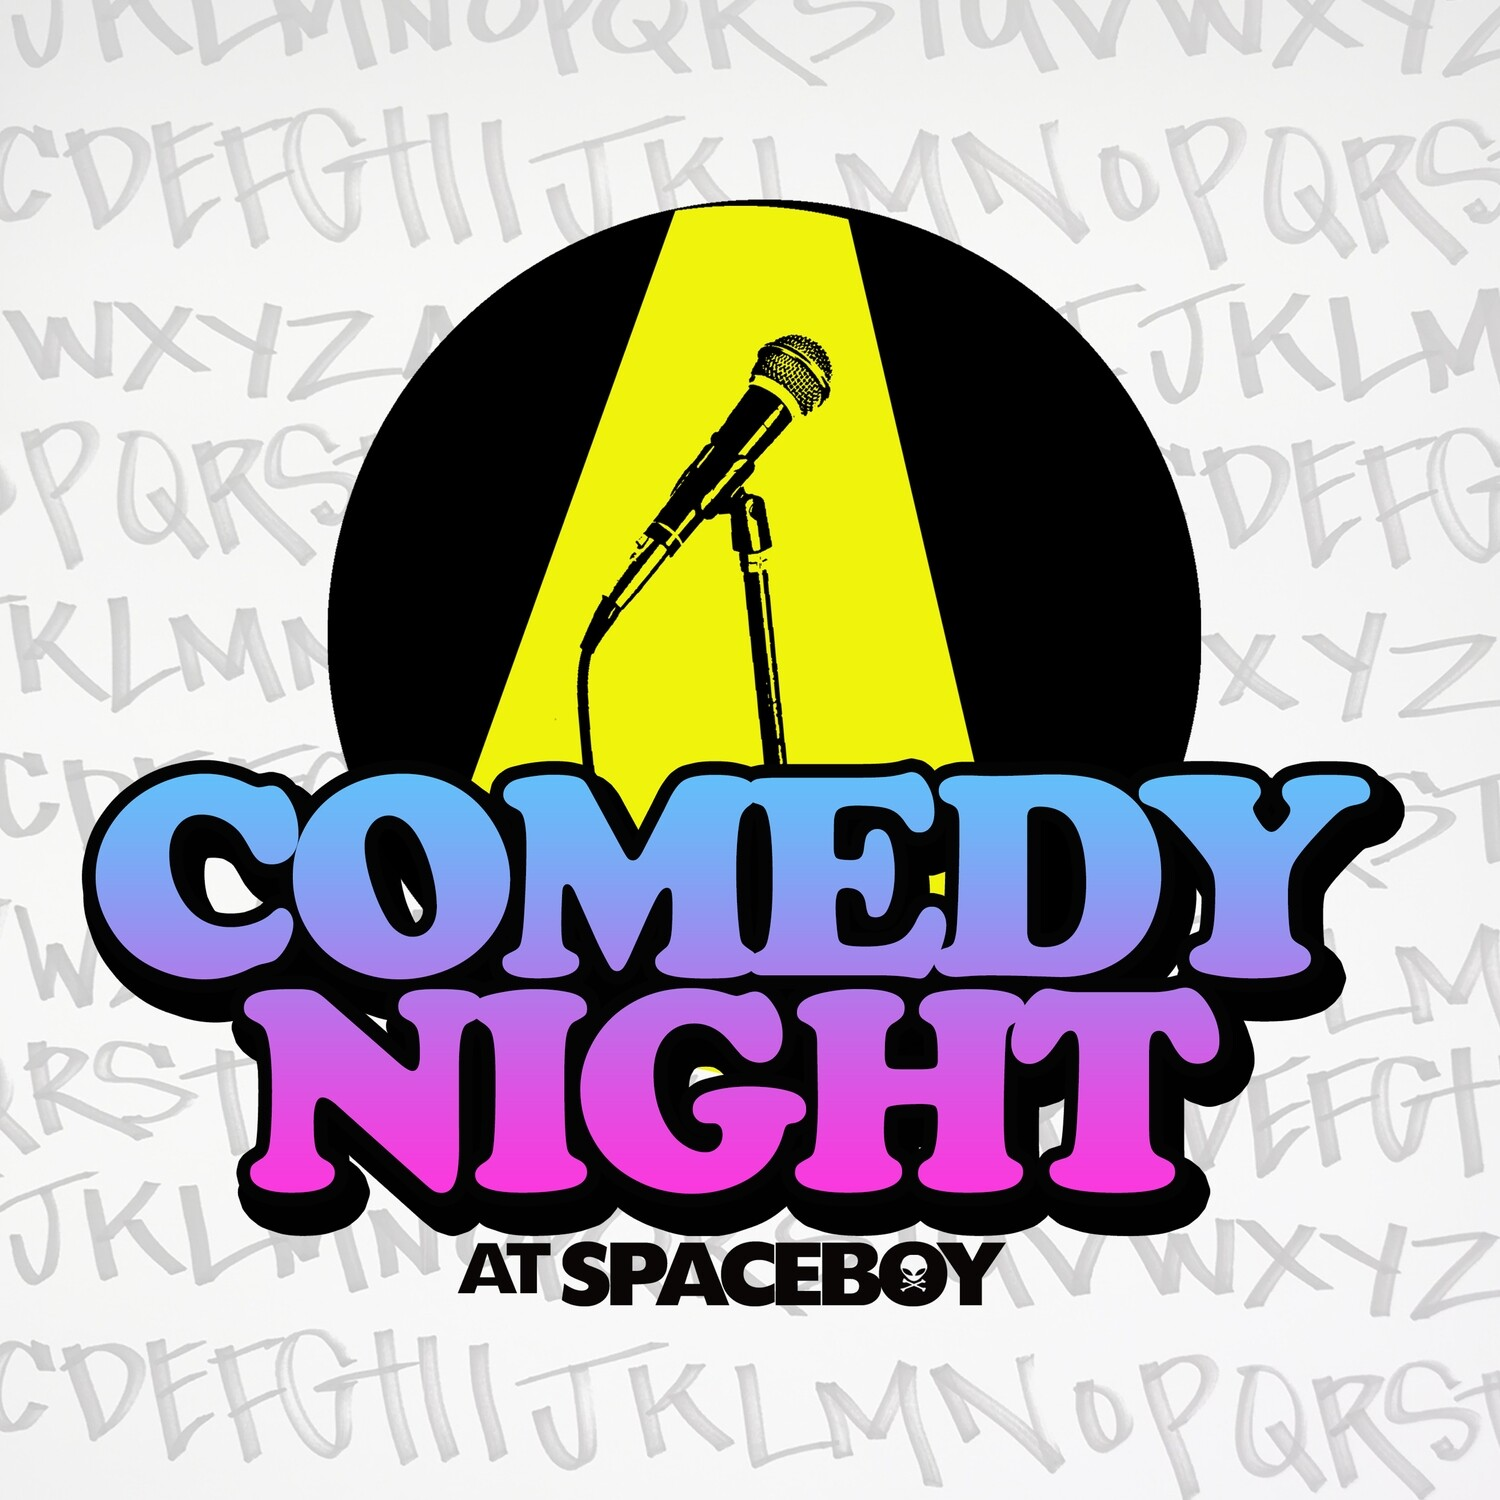 SPACEBOY COMEDY NIGHT